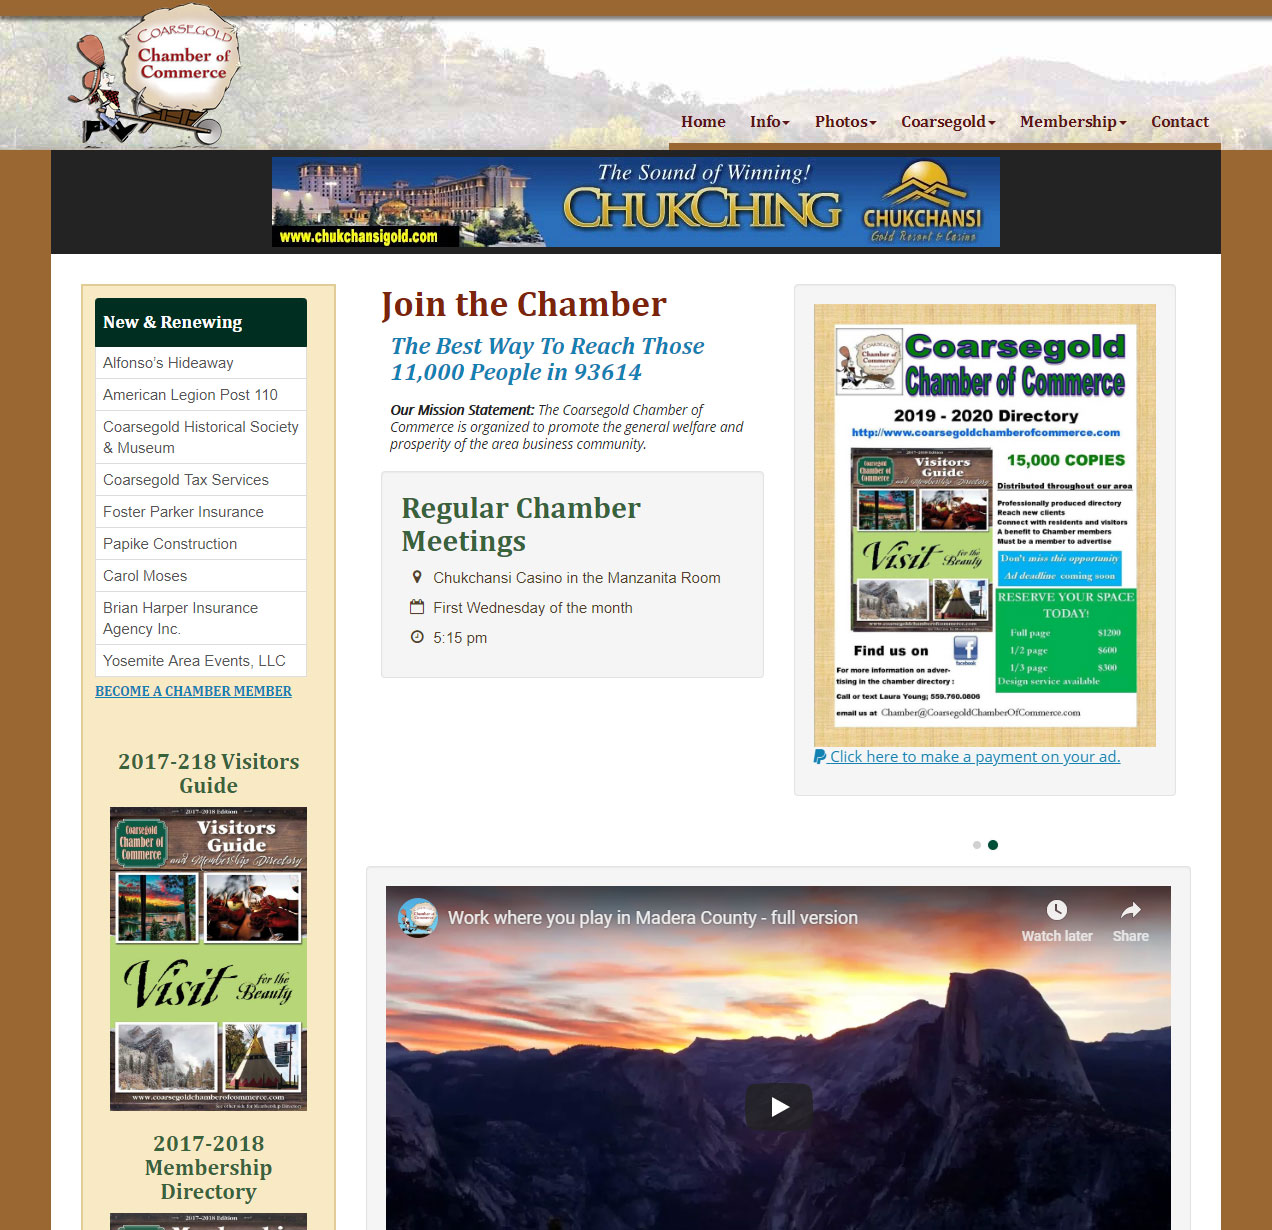 The Coarsegold Chamber of Commerce website